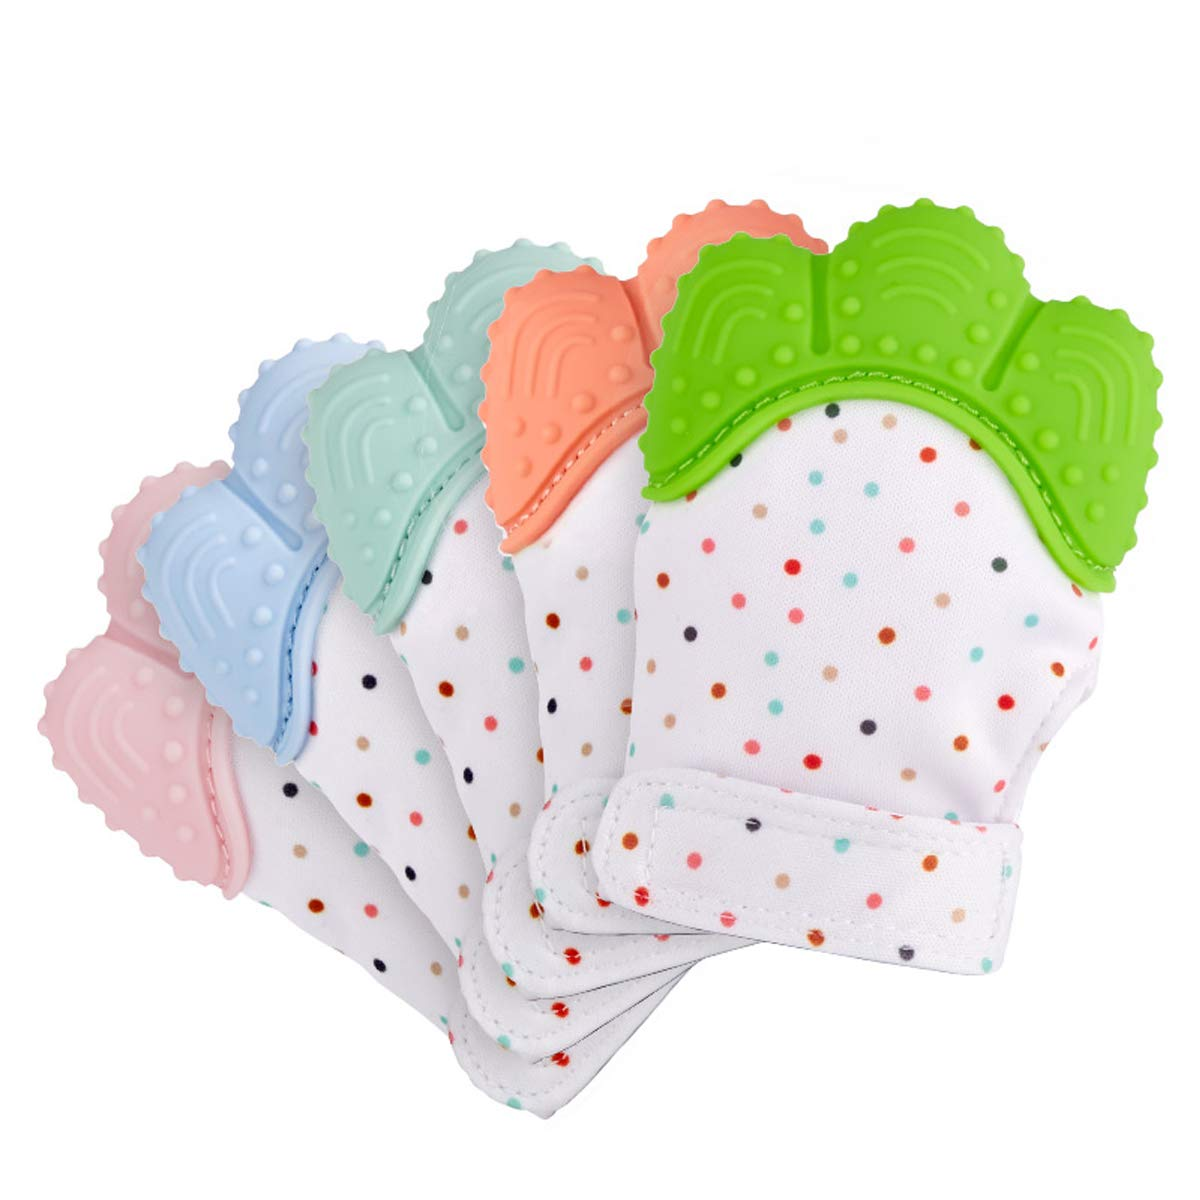 Kean Baby Teether Mitts Beauty Nymph Food-Grade Silicone Teething Baby Gloves Massage Gums Sounded Quarlz Pink